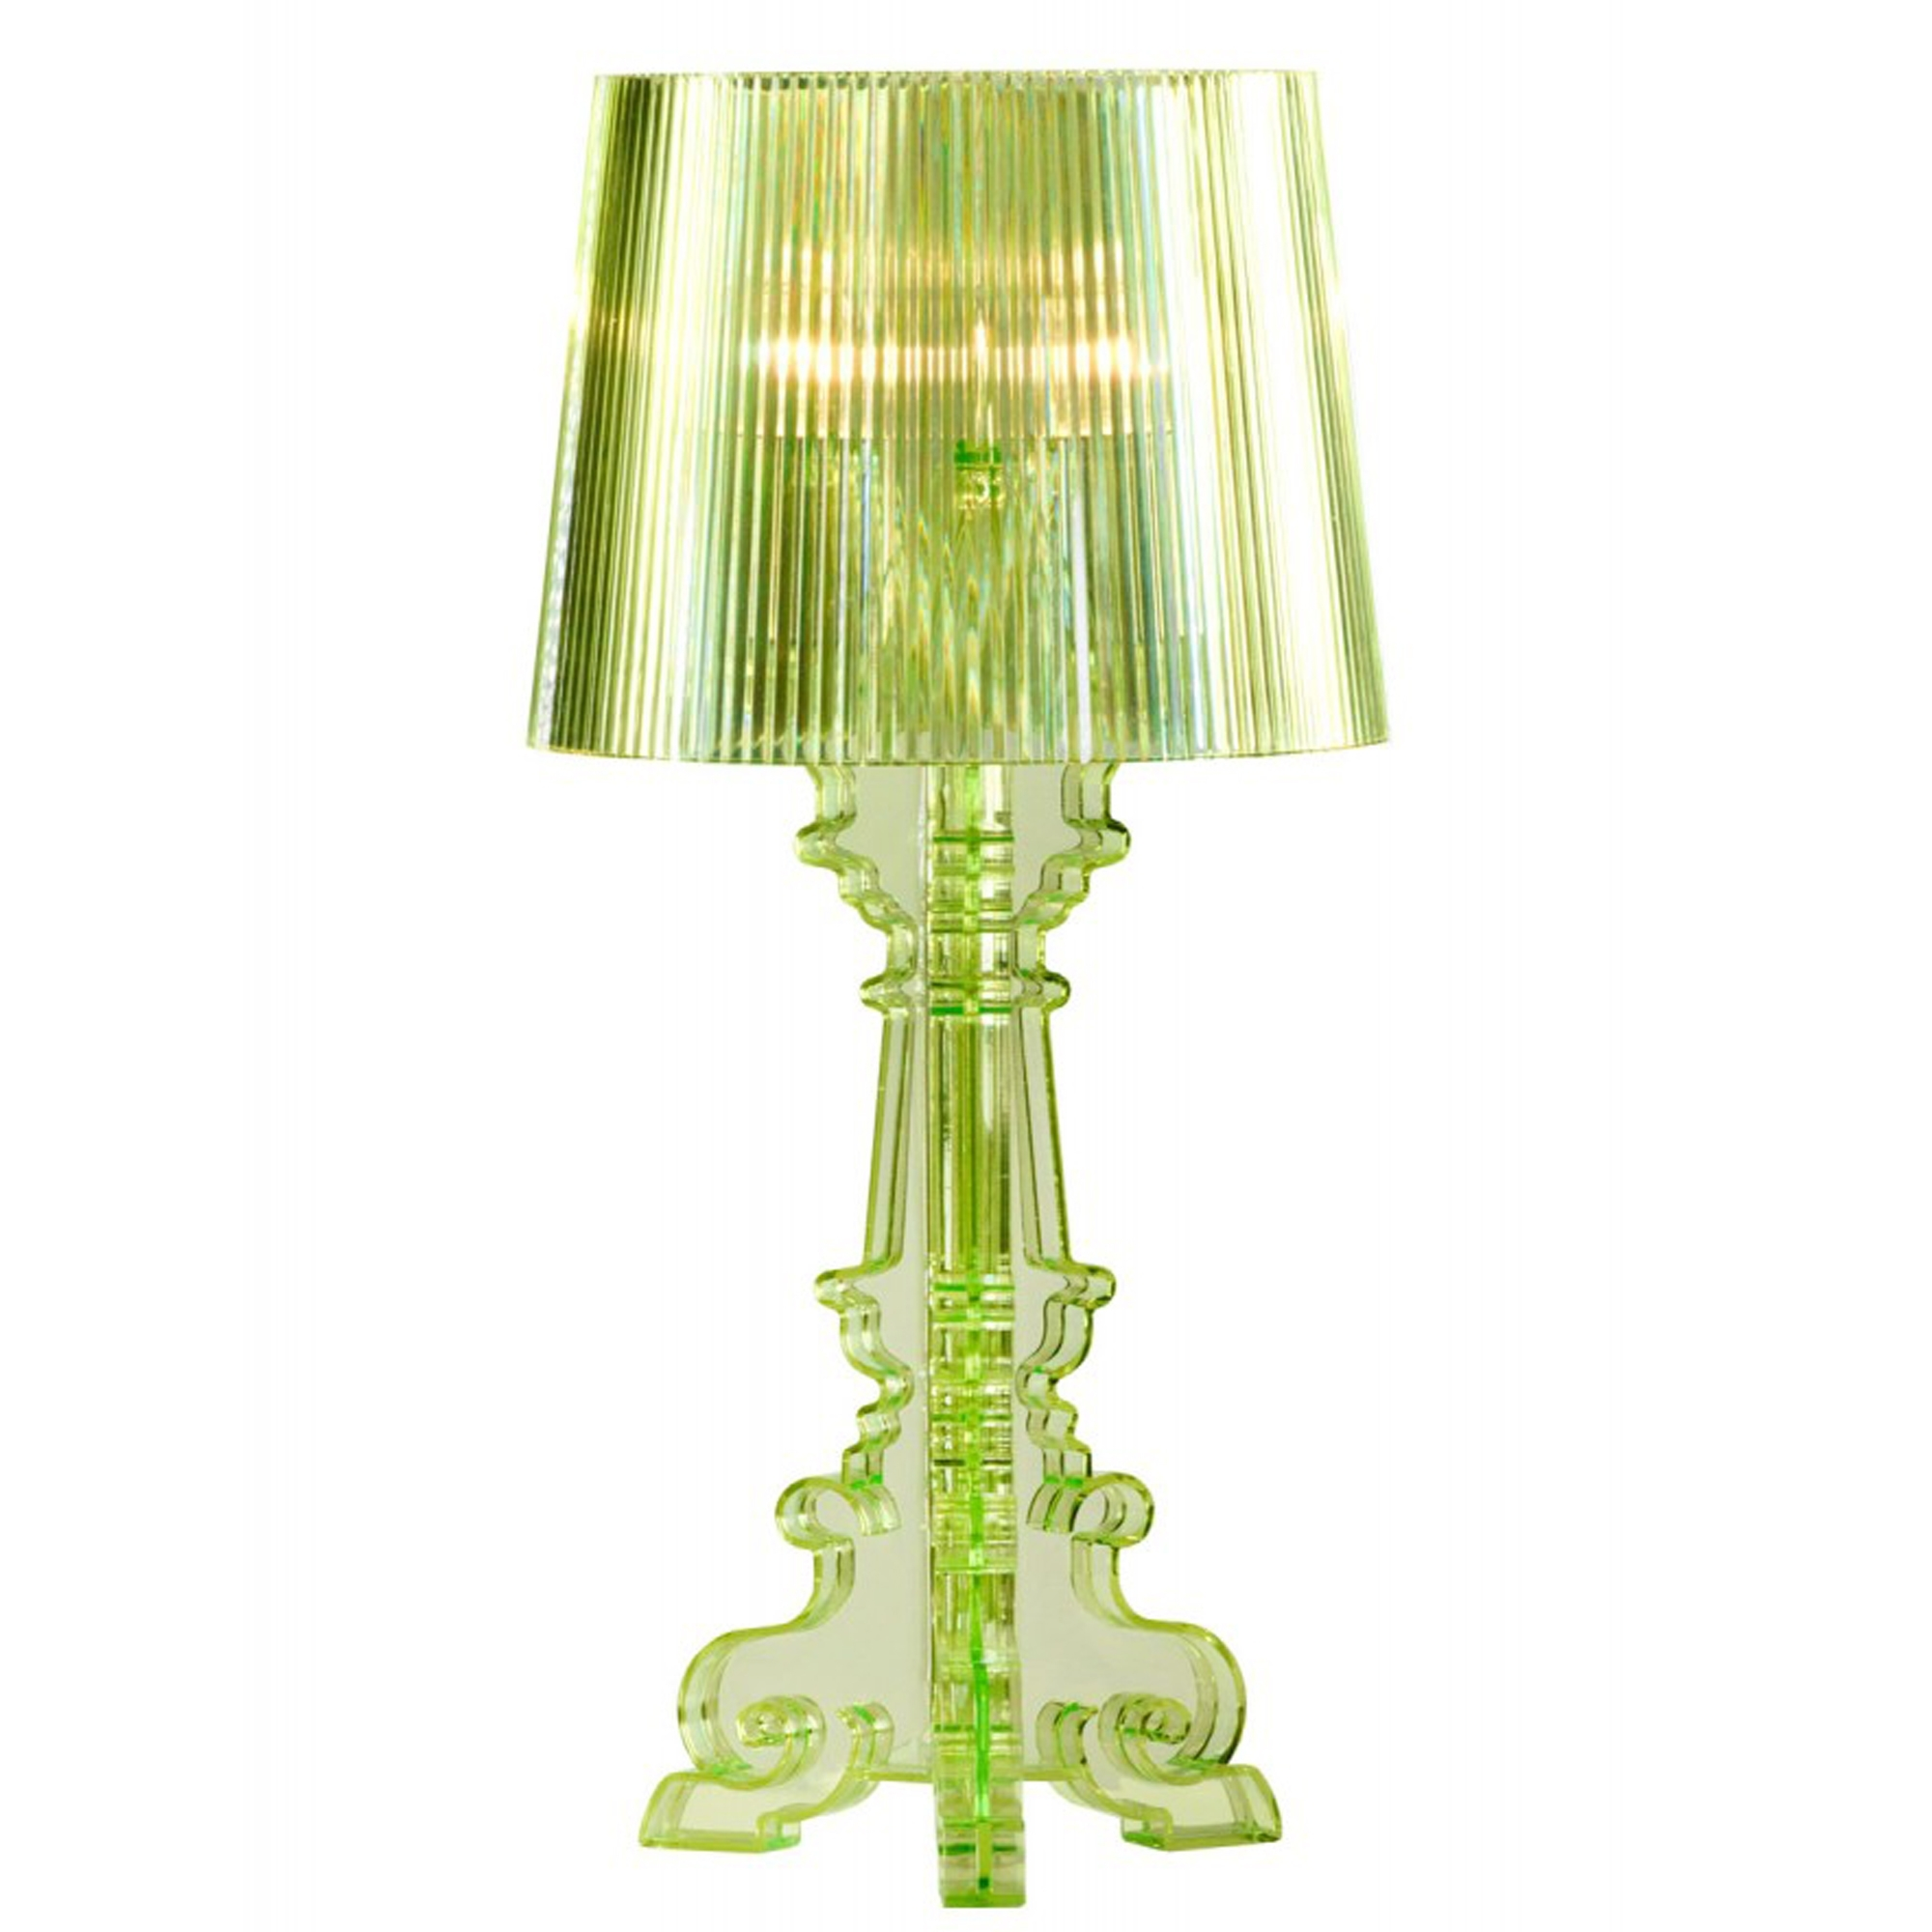 Green Acrylic Modern Table Lamp Table Lamps